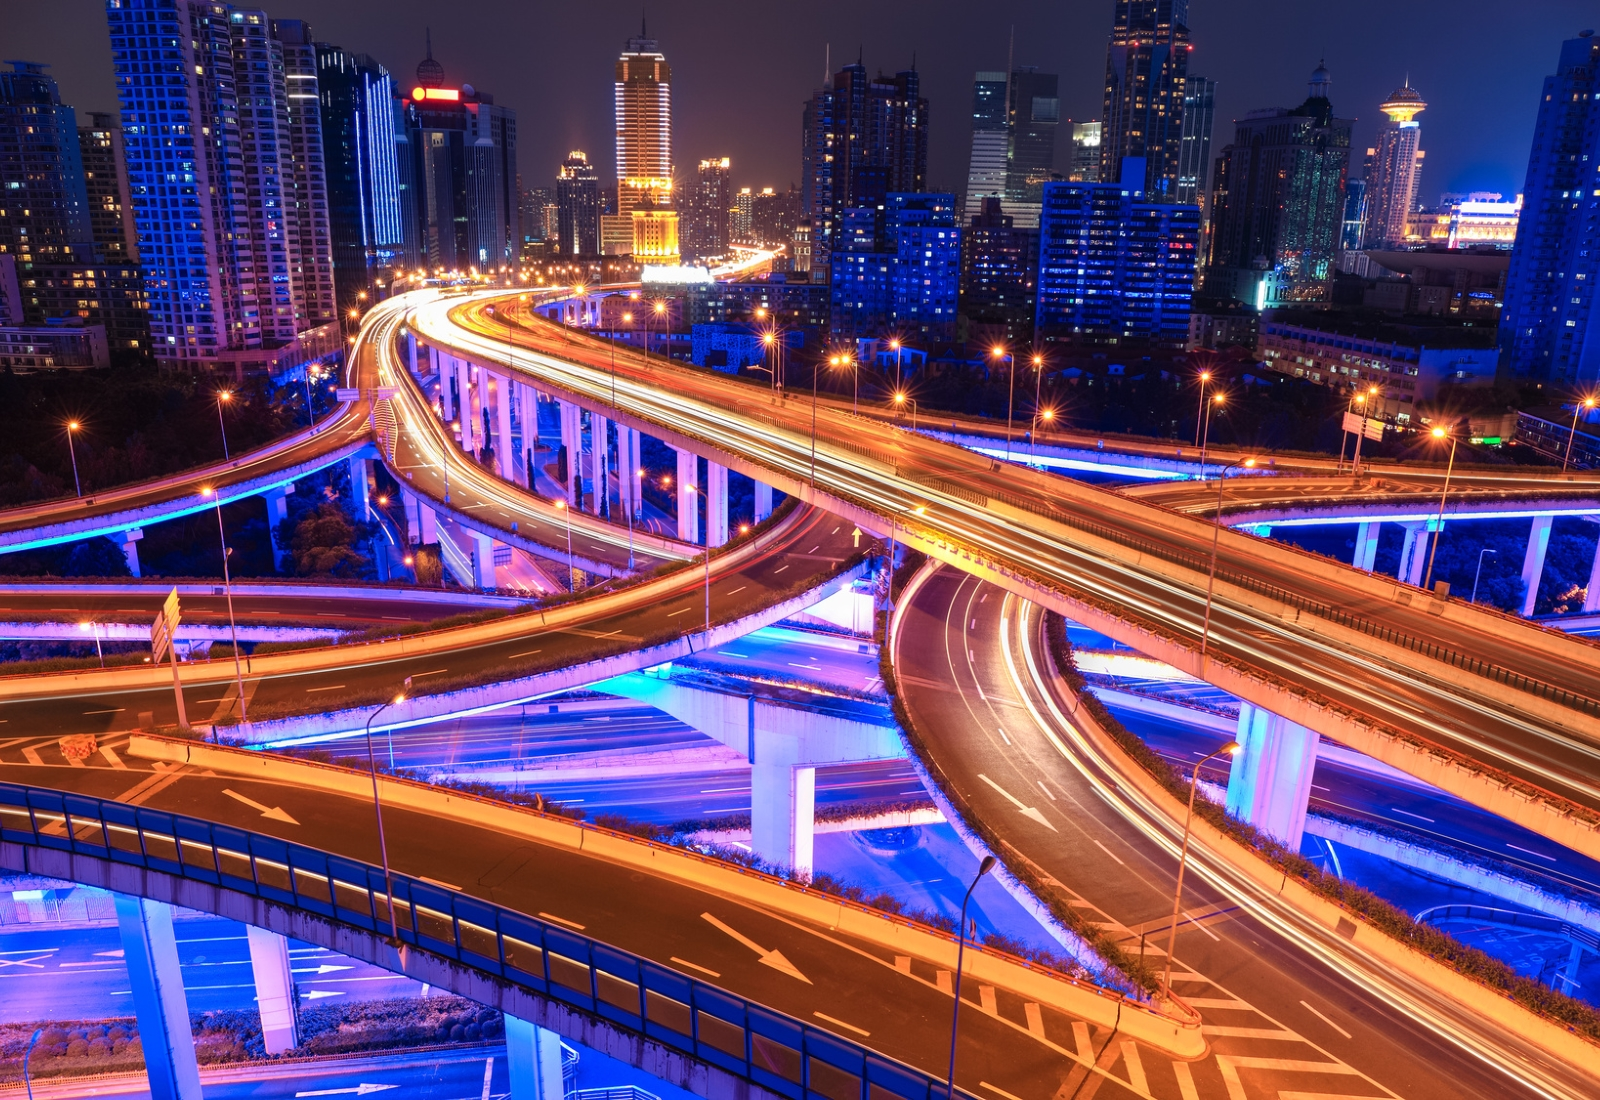 Colorful city interchange overpass at night in shanghai,China